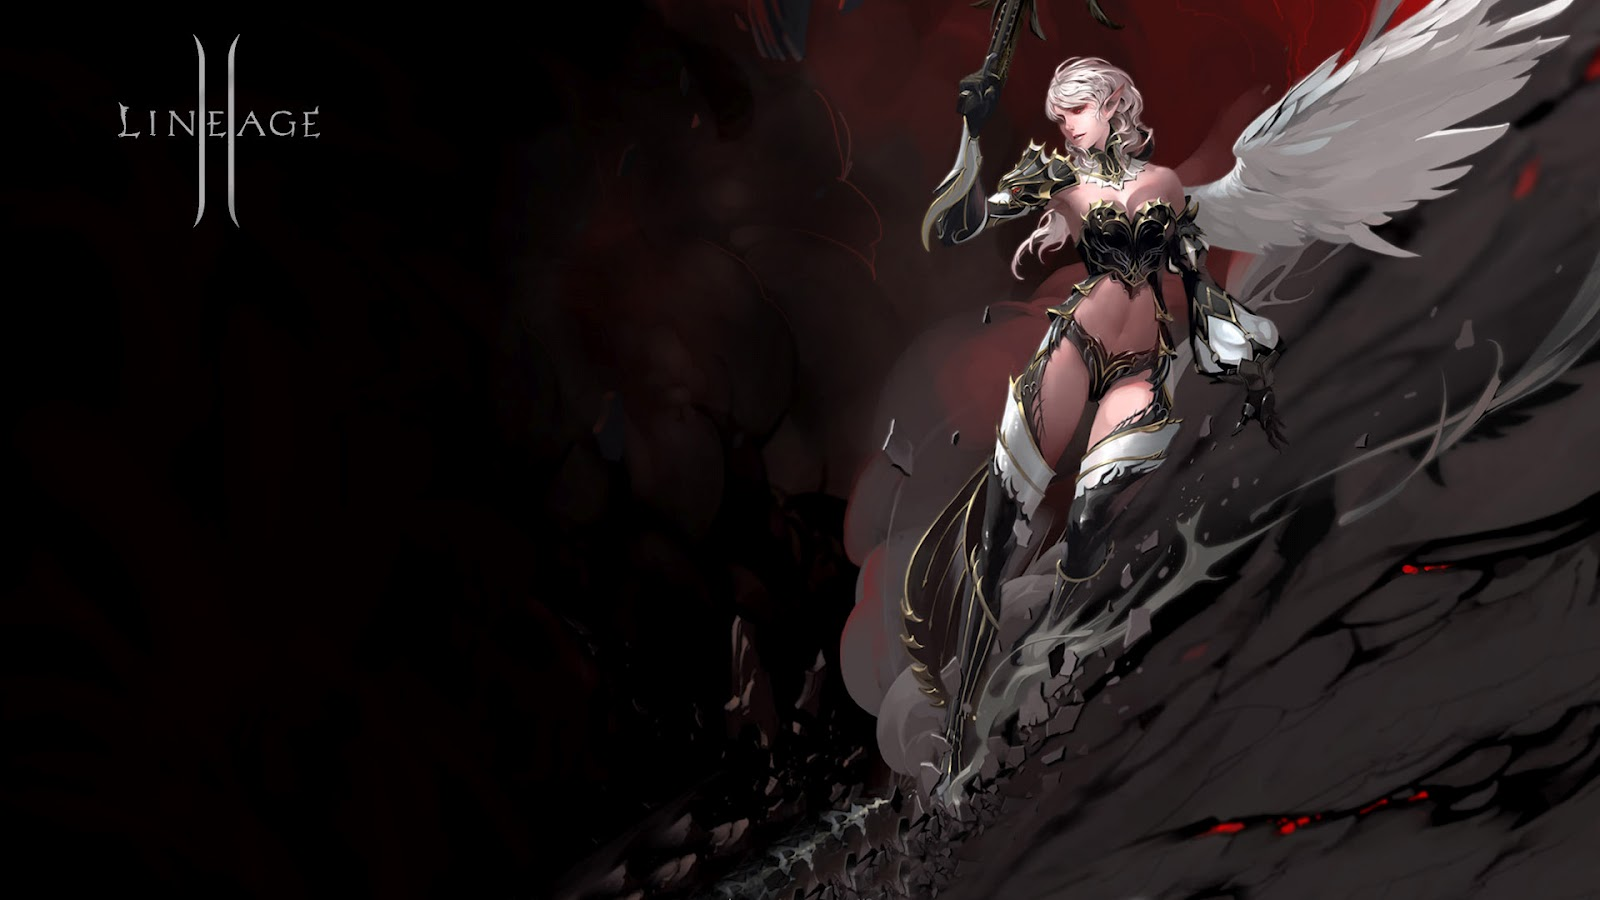 Ps3 hd wallpaper 1080p http2bpspot mftbui12ugeua6txgv5ni lineage 2 online wallpapers in hd voltagebd Choice Image